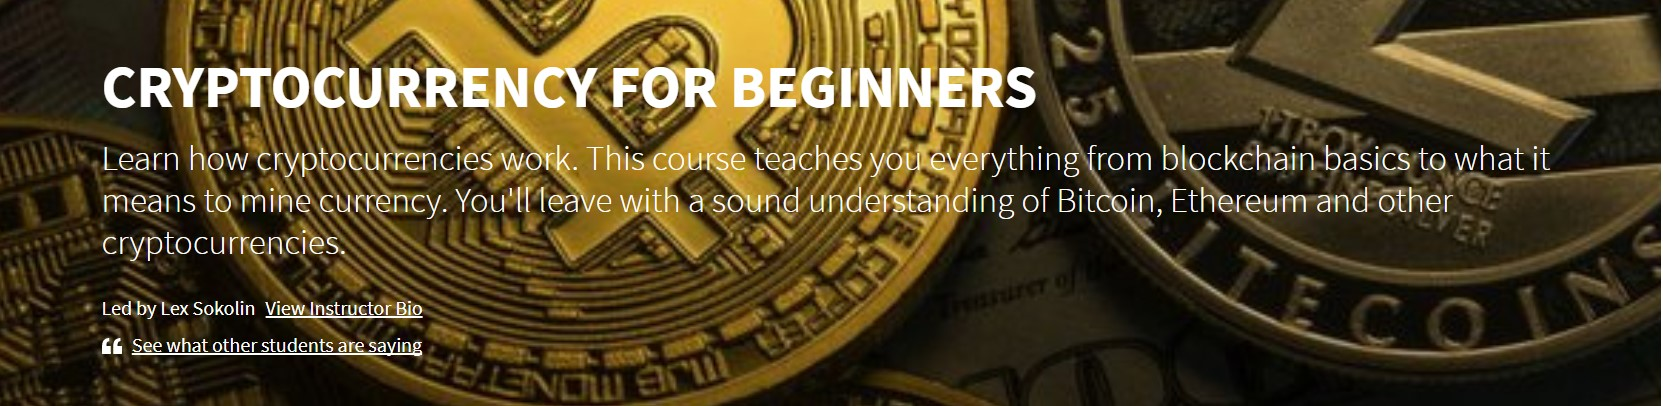 Cryptocurrency For Beginners Course